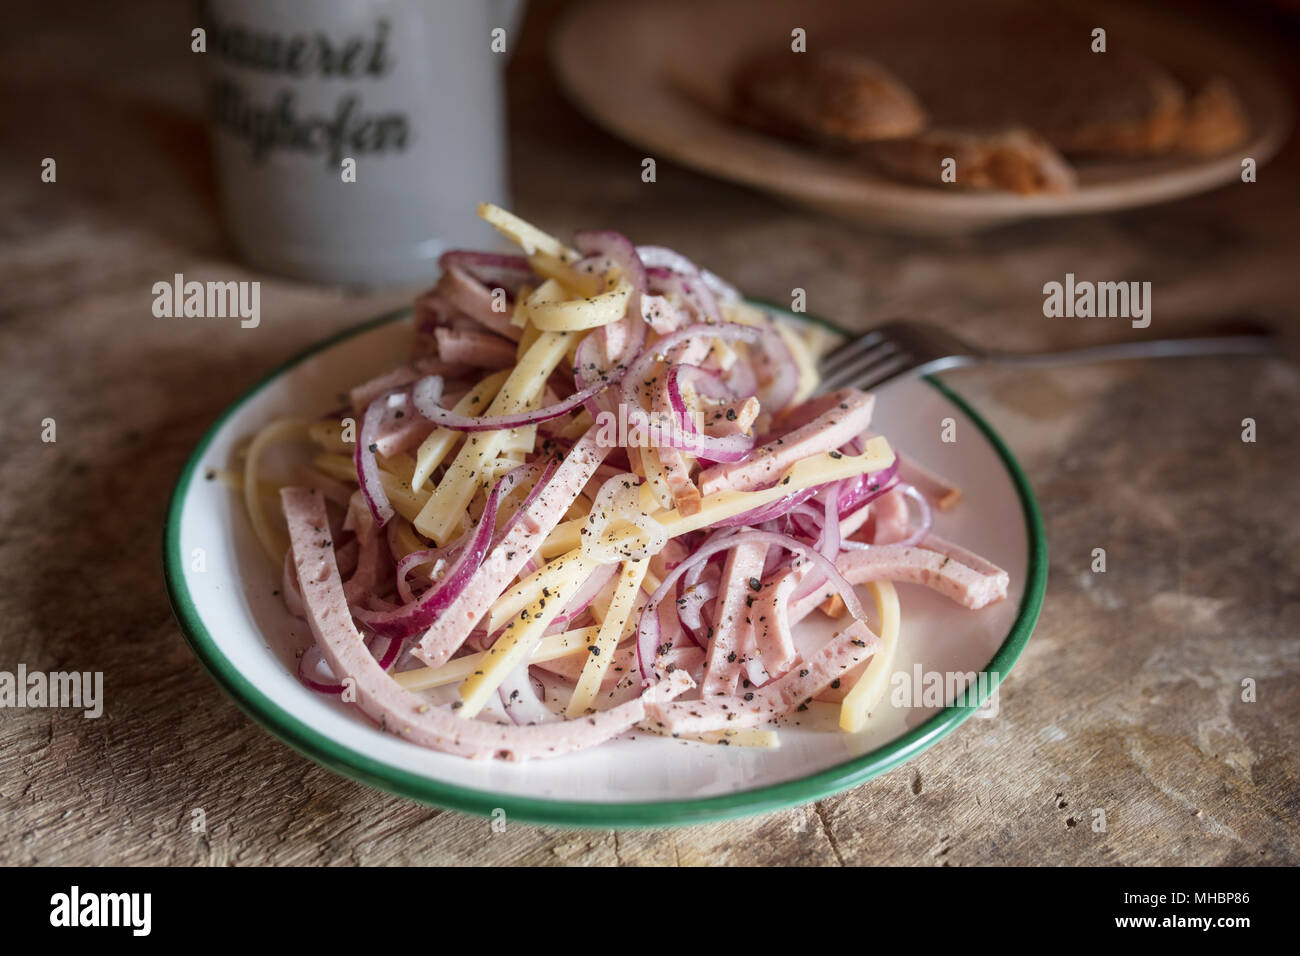 Swiss sausage salad, served in a plate on a wooden table, Bavaria, Germany - Stock Image